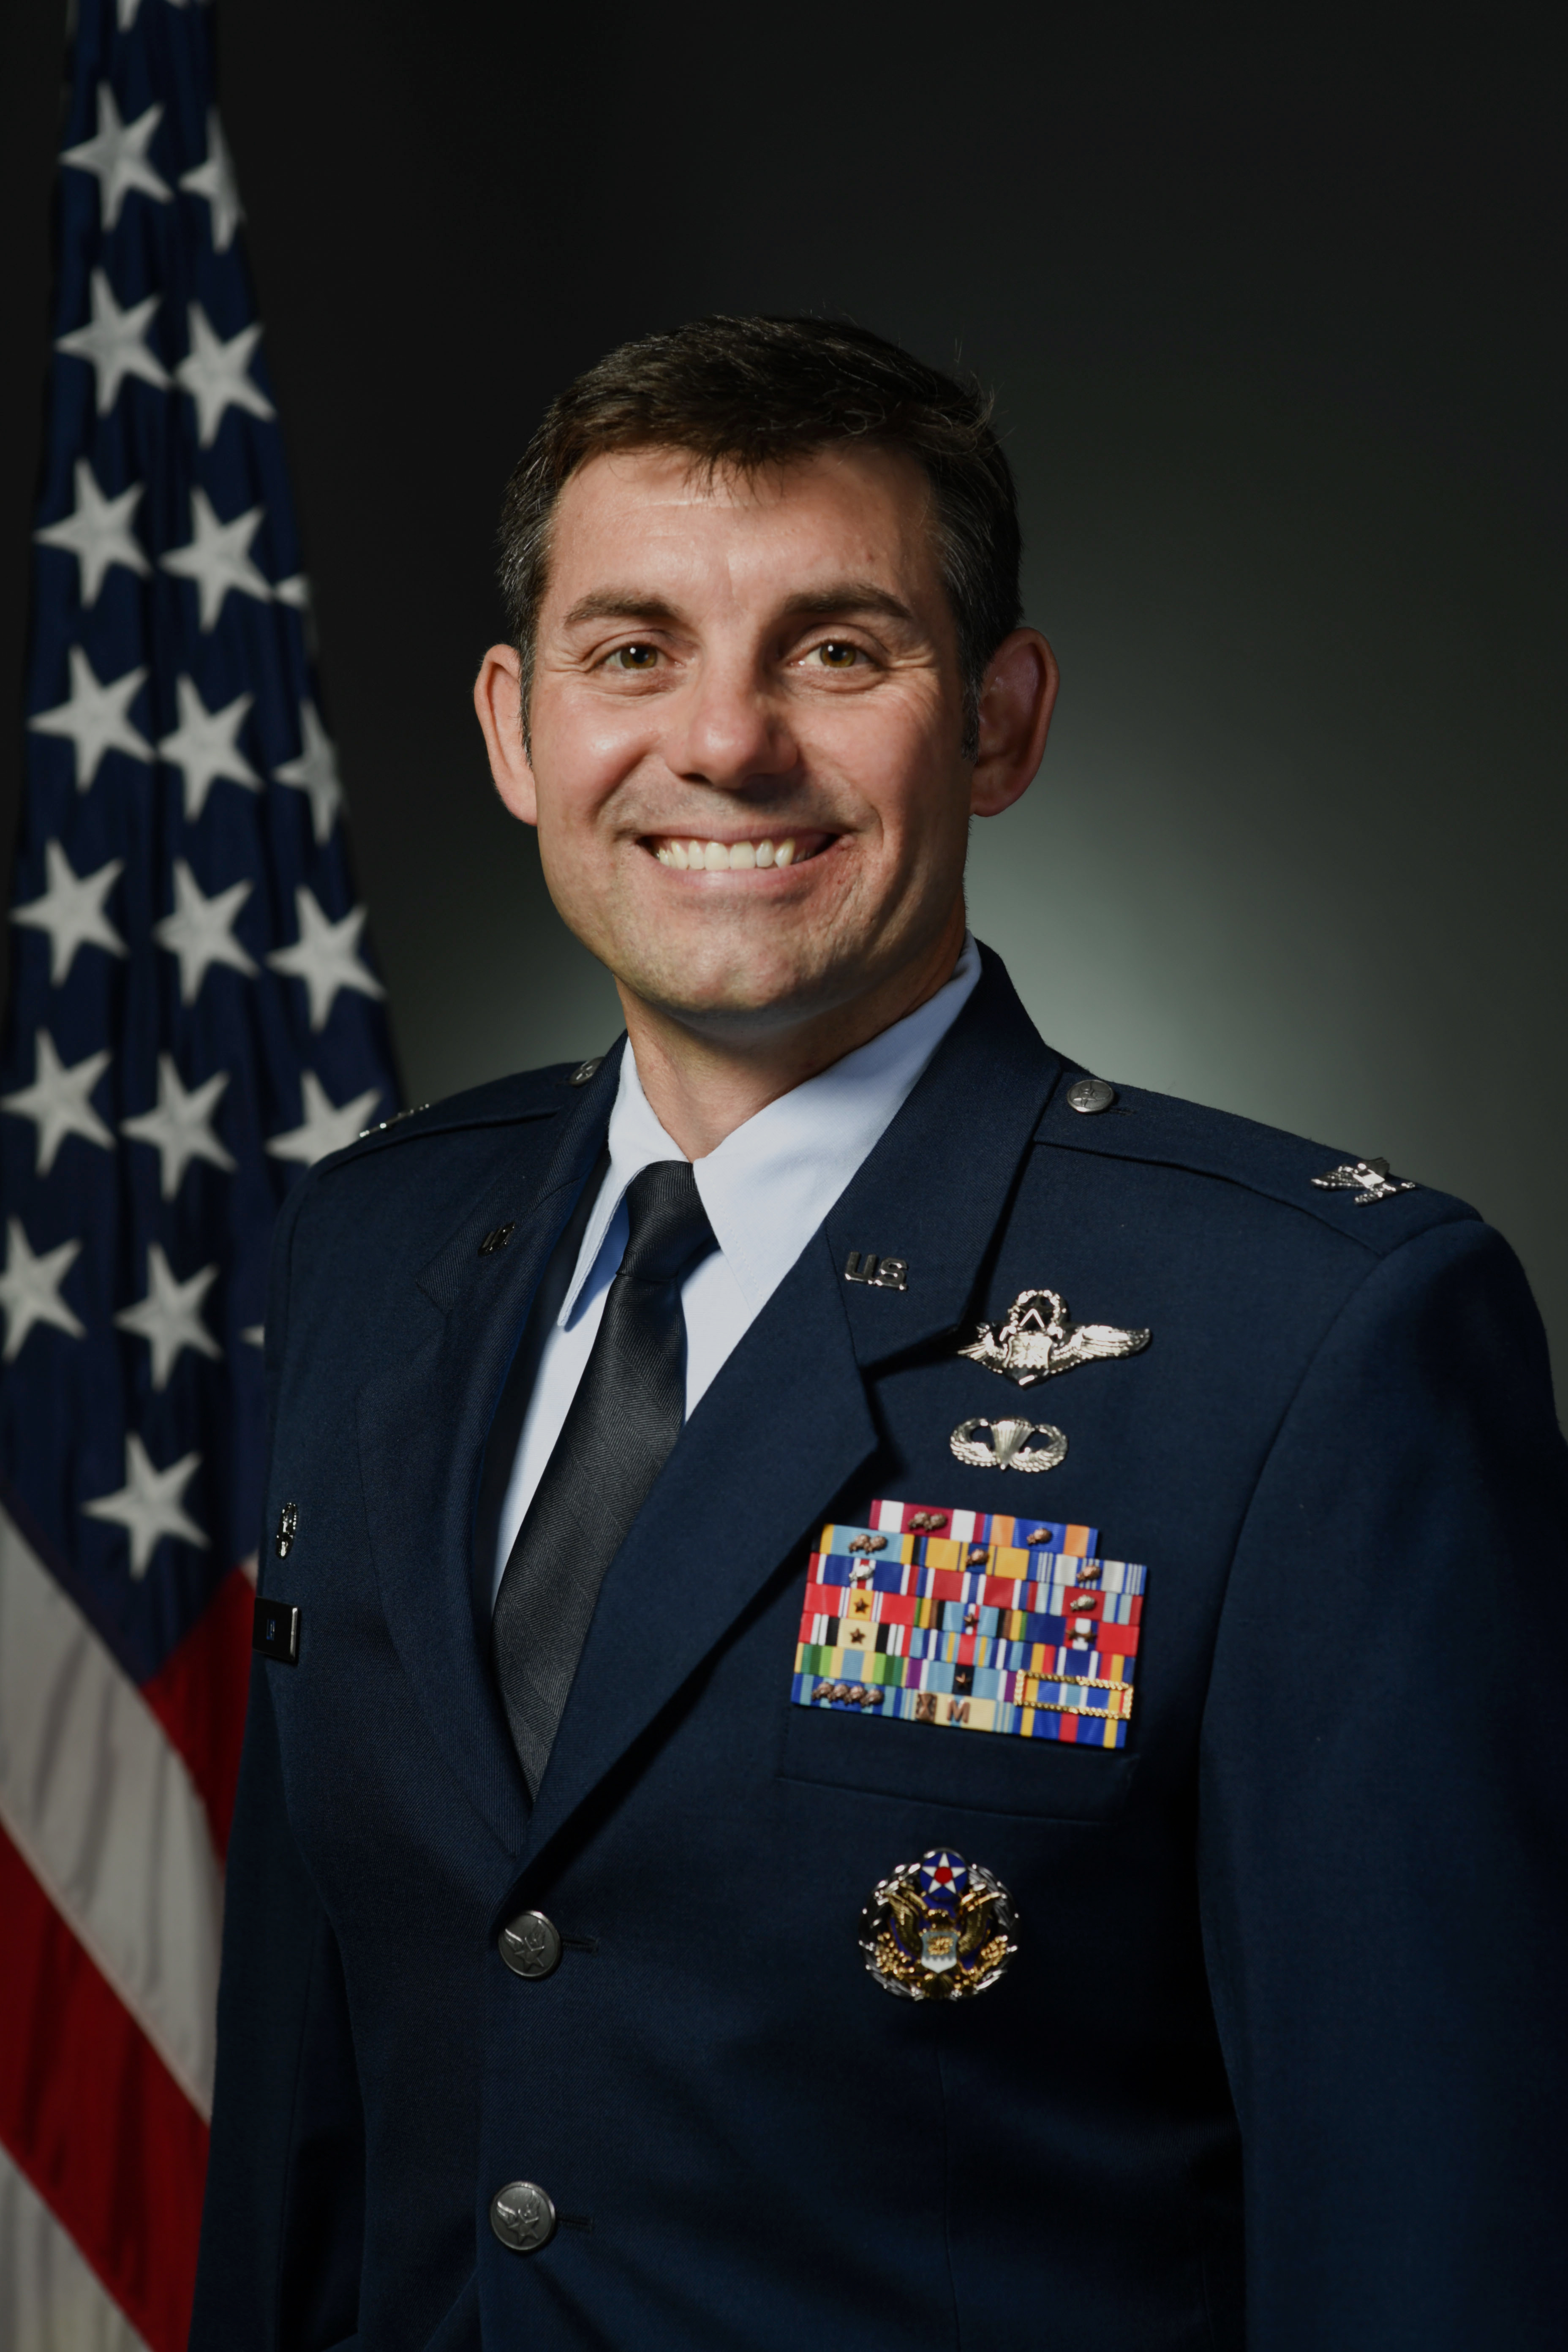 Colonel Christopher T. Lay